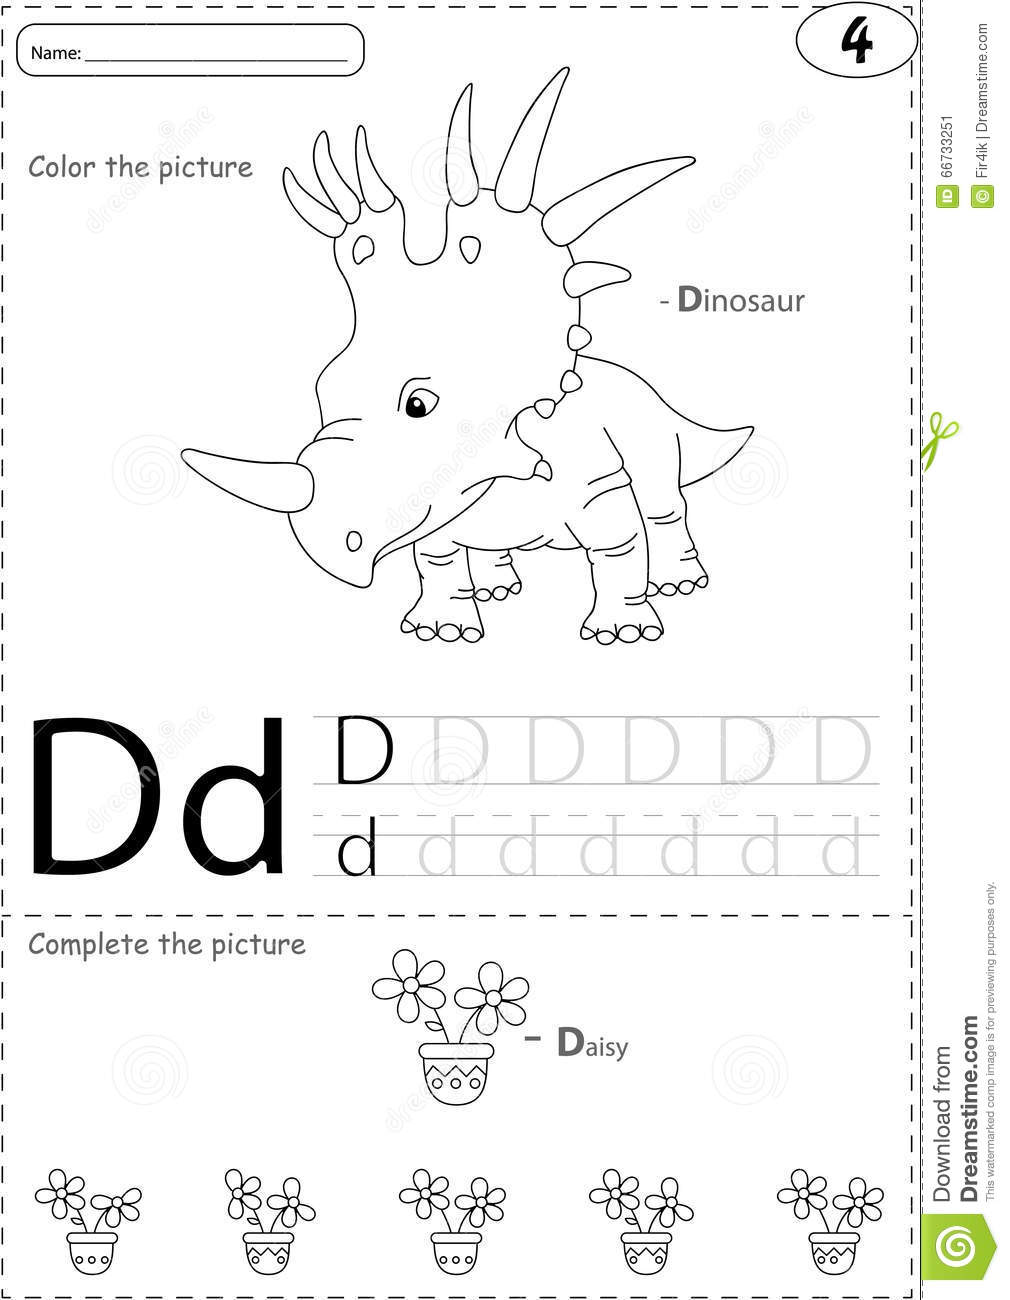 coloring pages letter names daisy - photo#10